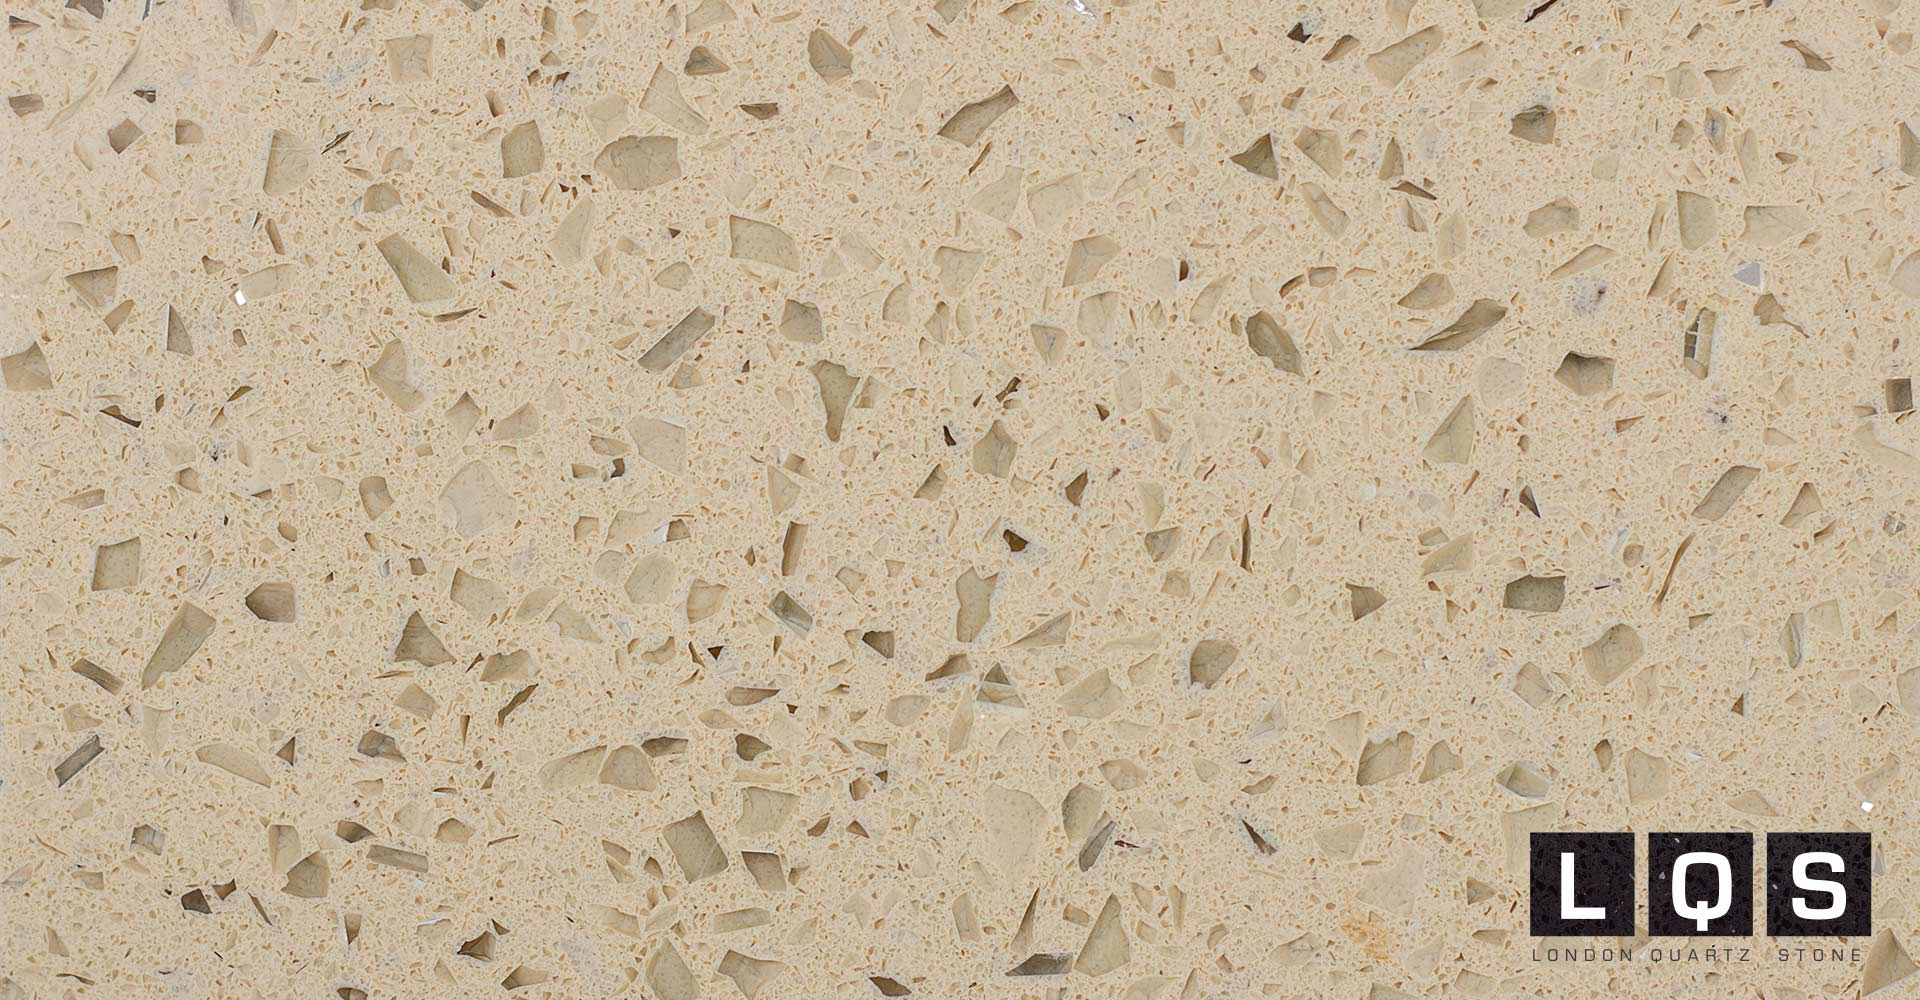 London Quartz - Cream miror